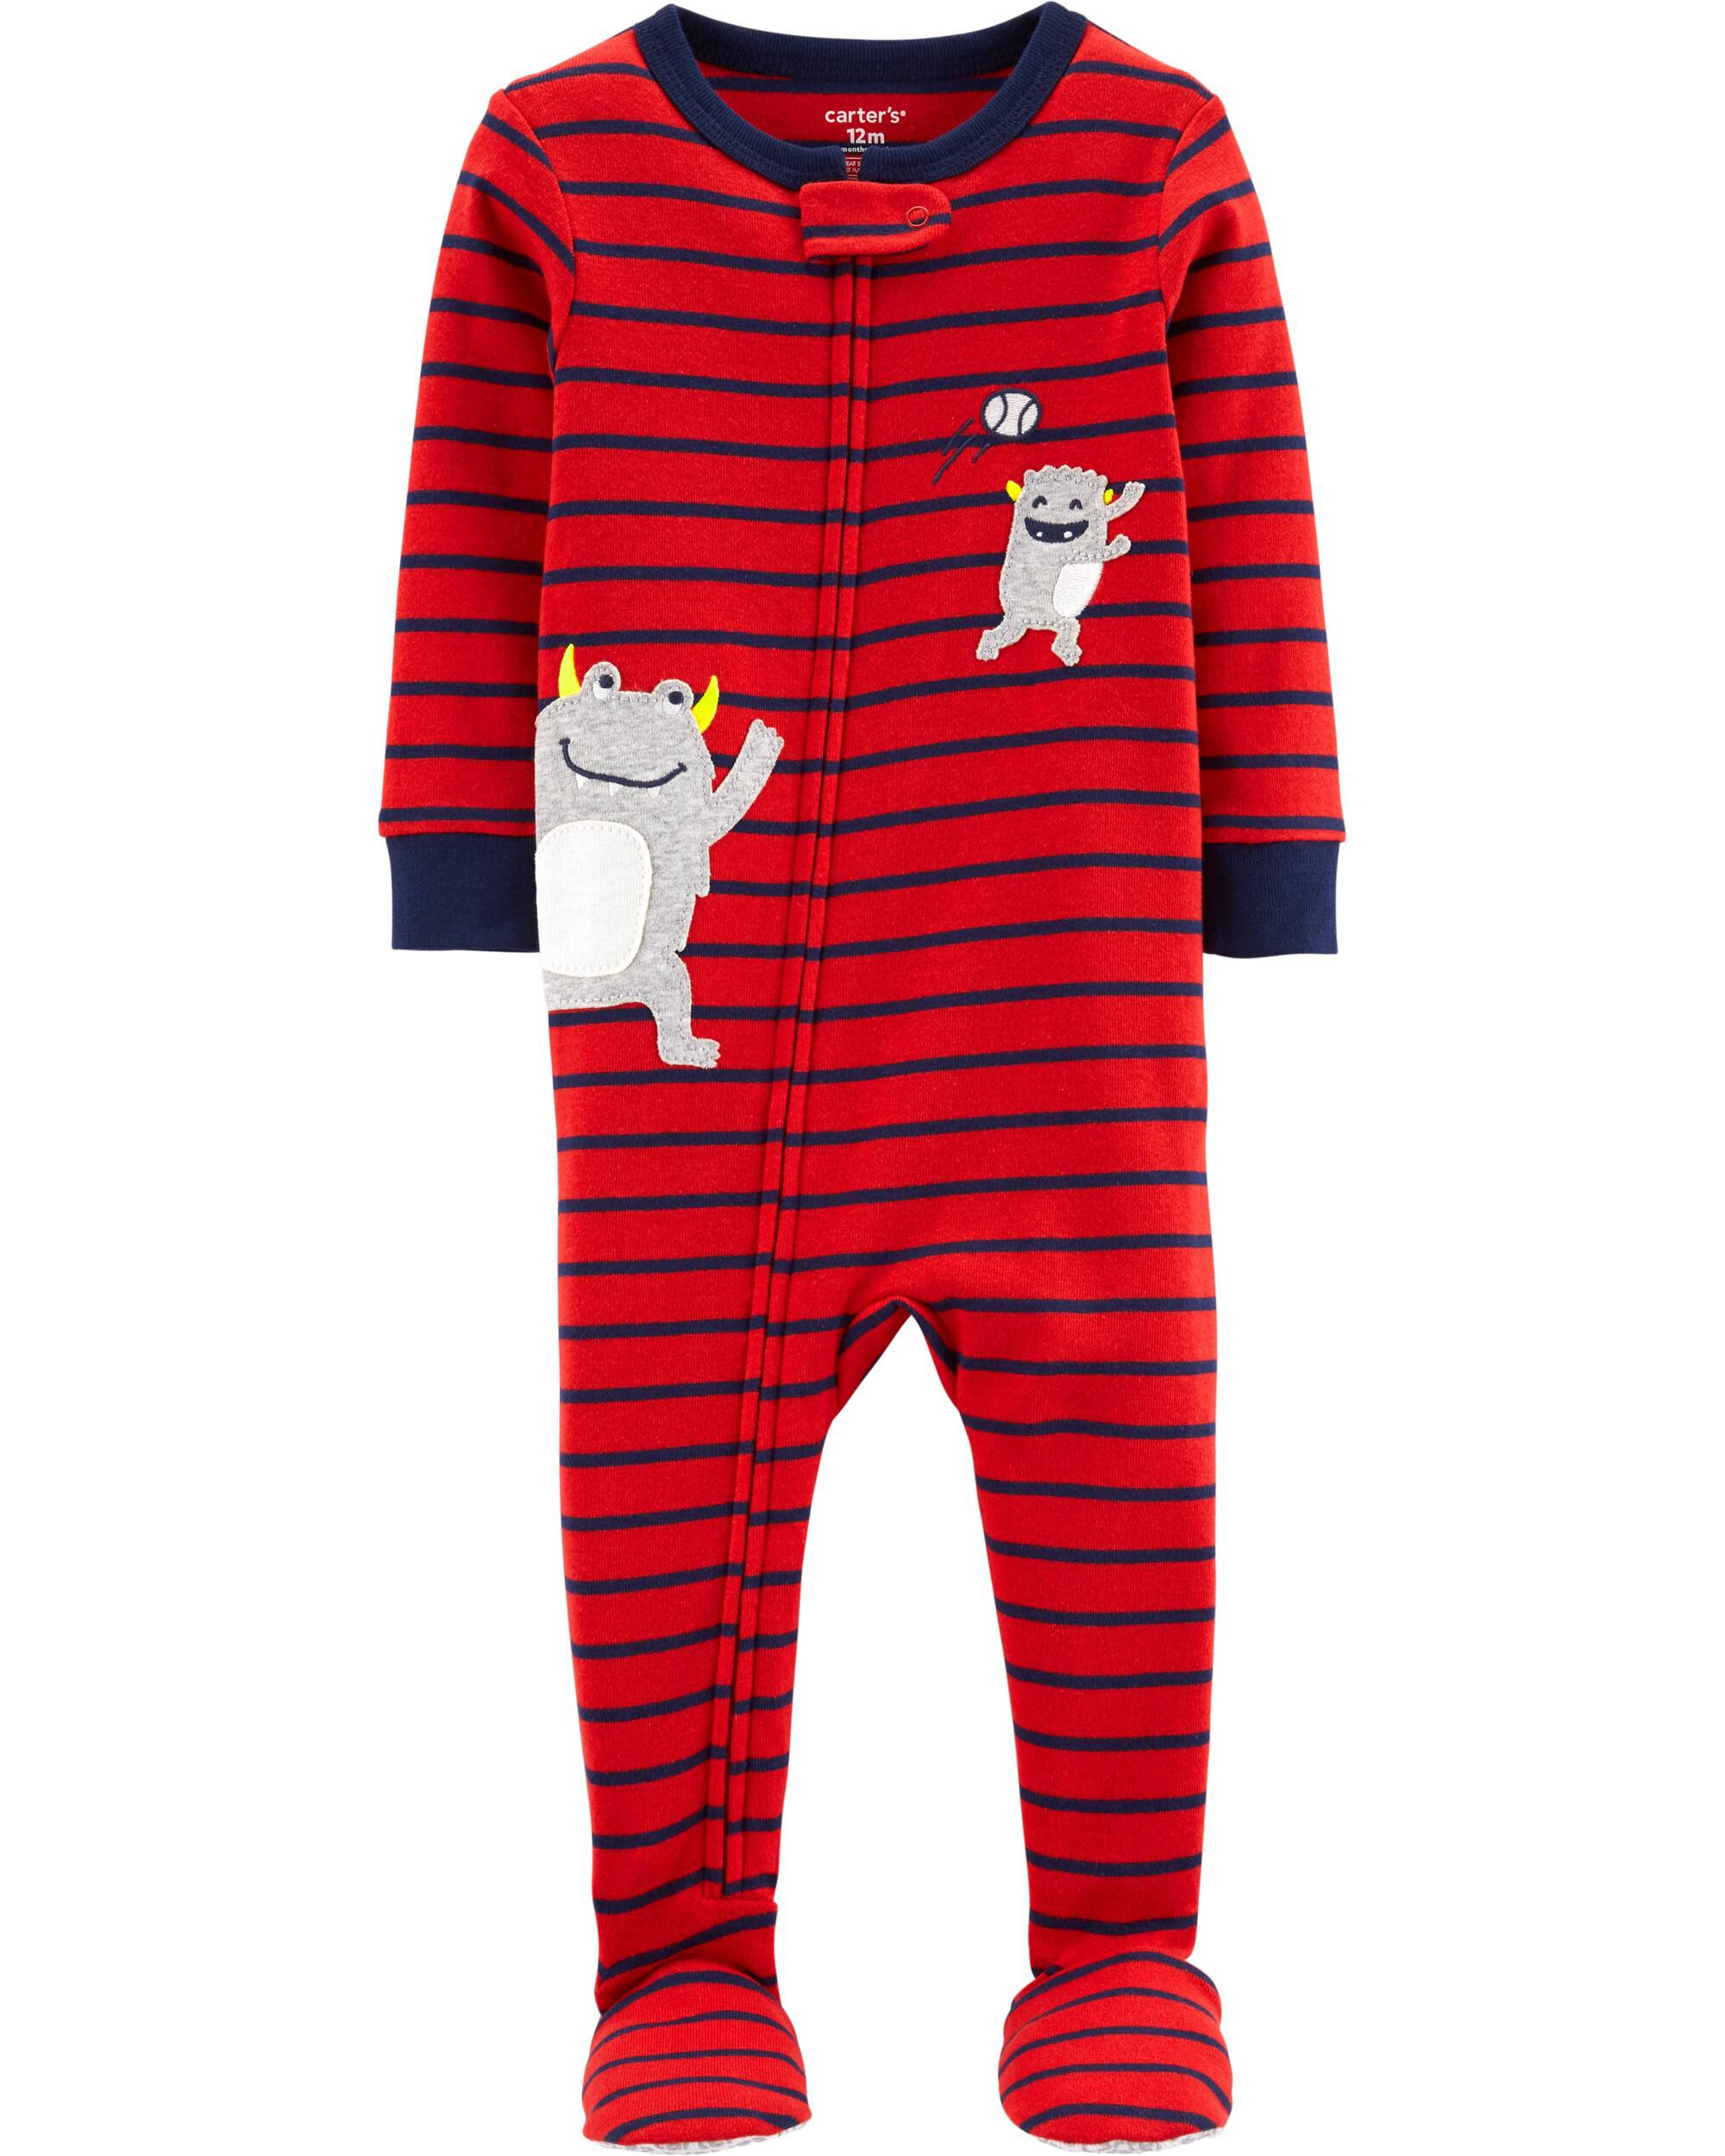 Carter's 1-piece Dog Fleece Pjs Bright In Colour Clothing, Shoes & Accessories